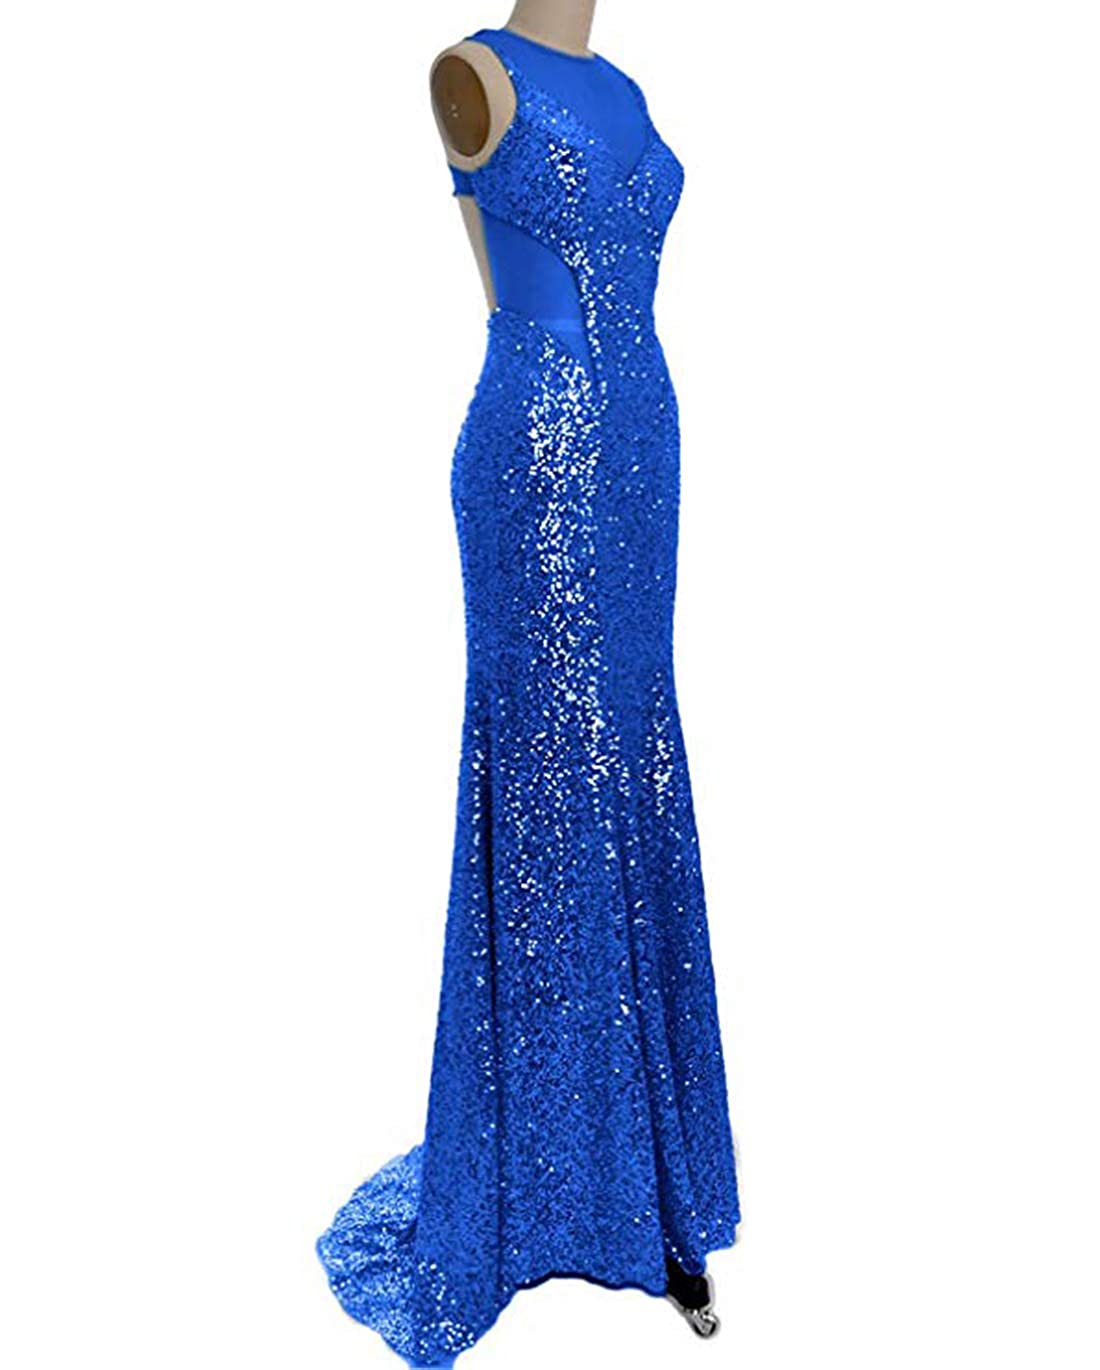 Royal bluee olise bridal Blingbling Mermaid Prom Dresses Special Design Sparkly Sequin Backless Long Evening Gowns Women Wear